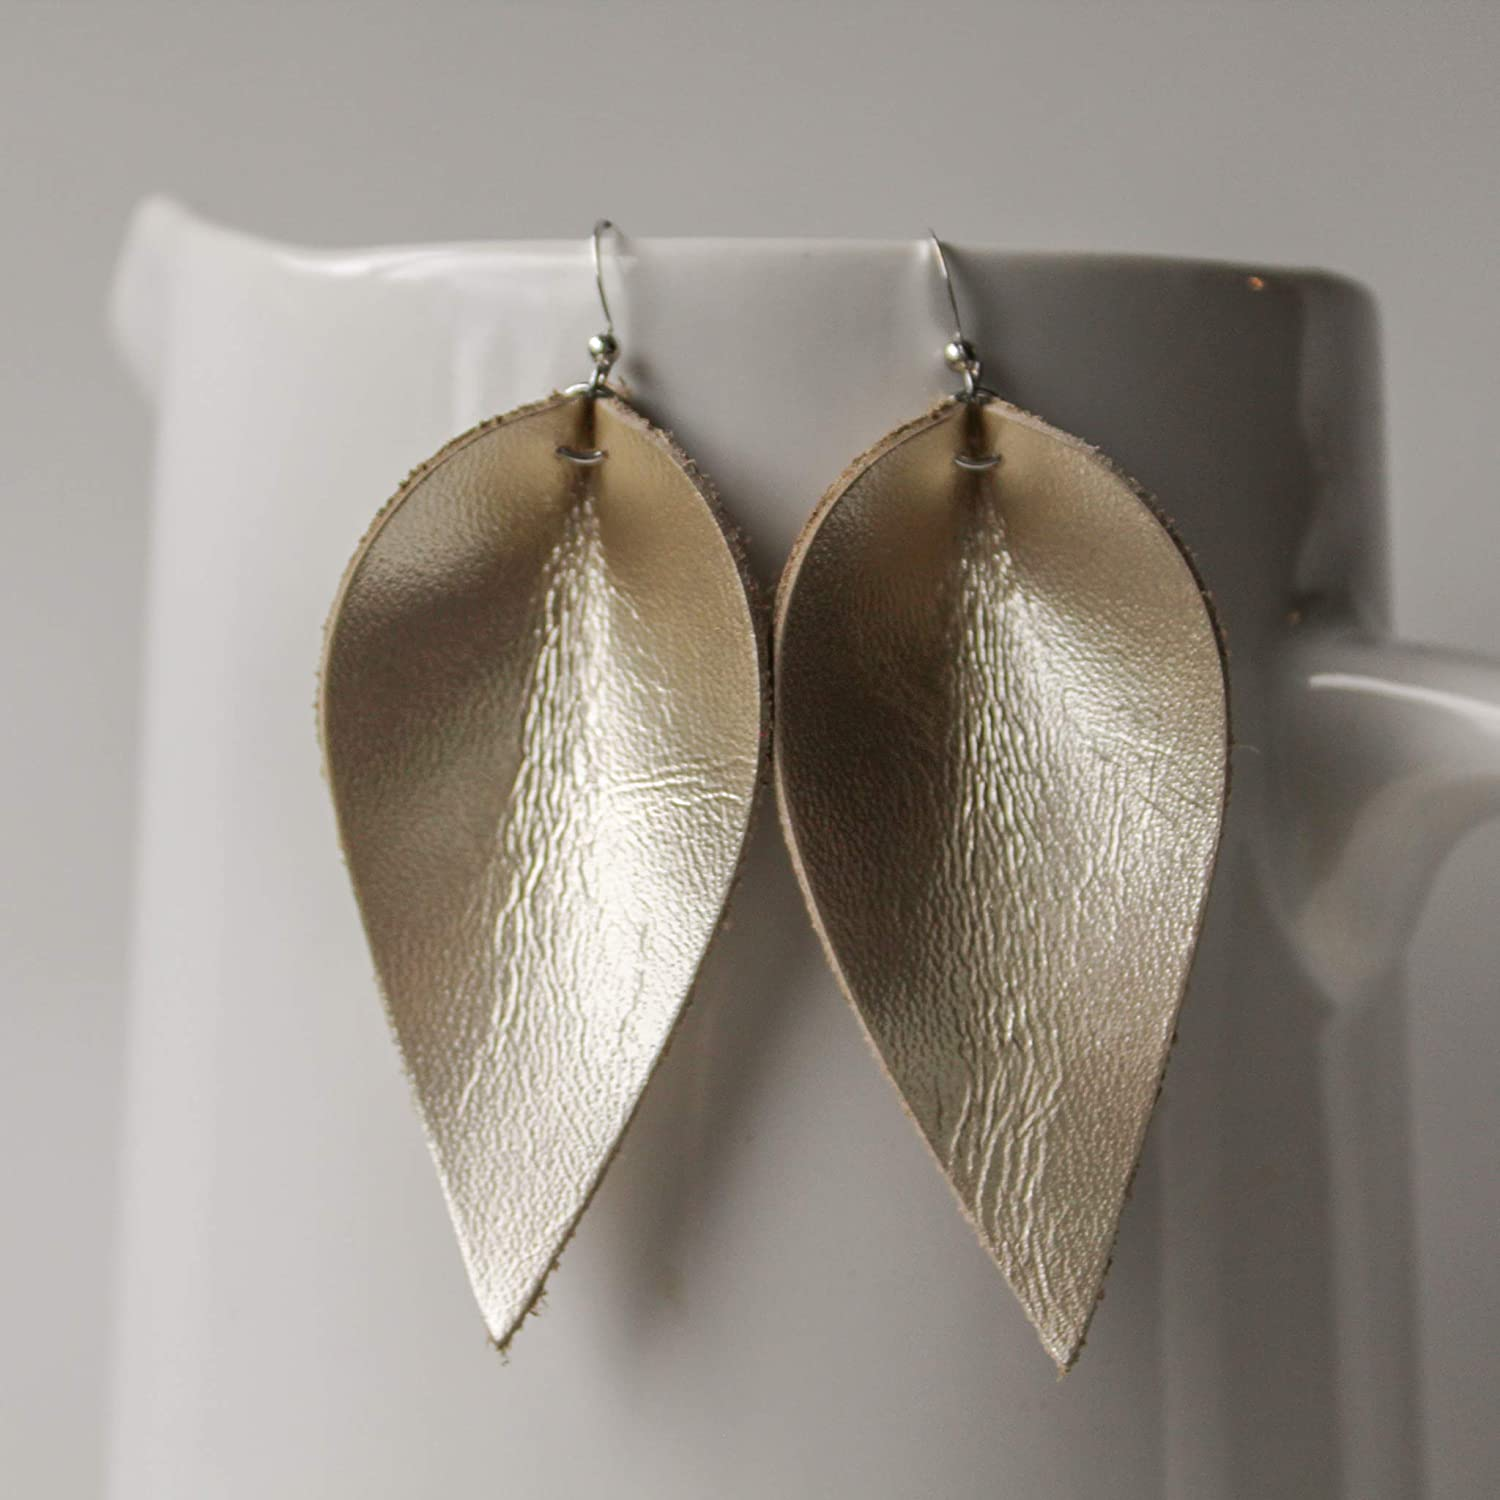 Genuine Leather & Sterling Silver Leaf Earrings // Gold Leather // Joanna Gaines Inspired // Lightweight Statement Earrings